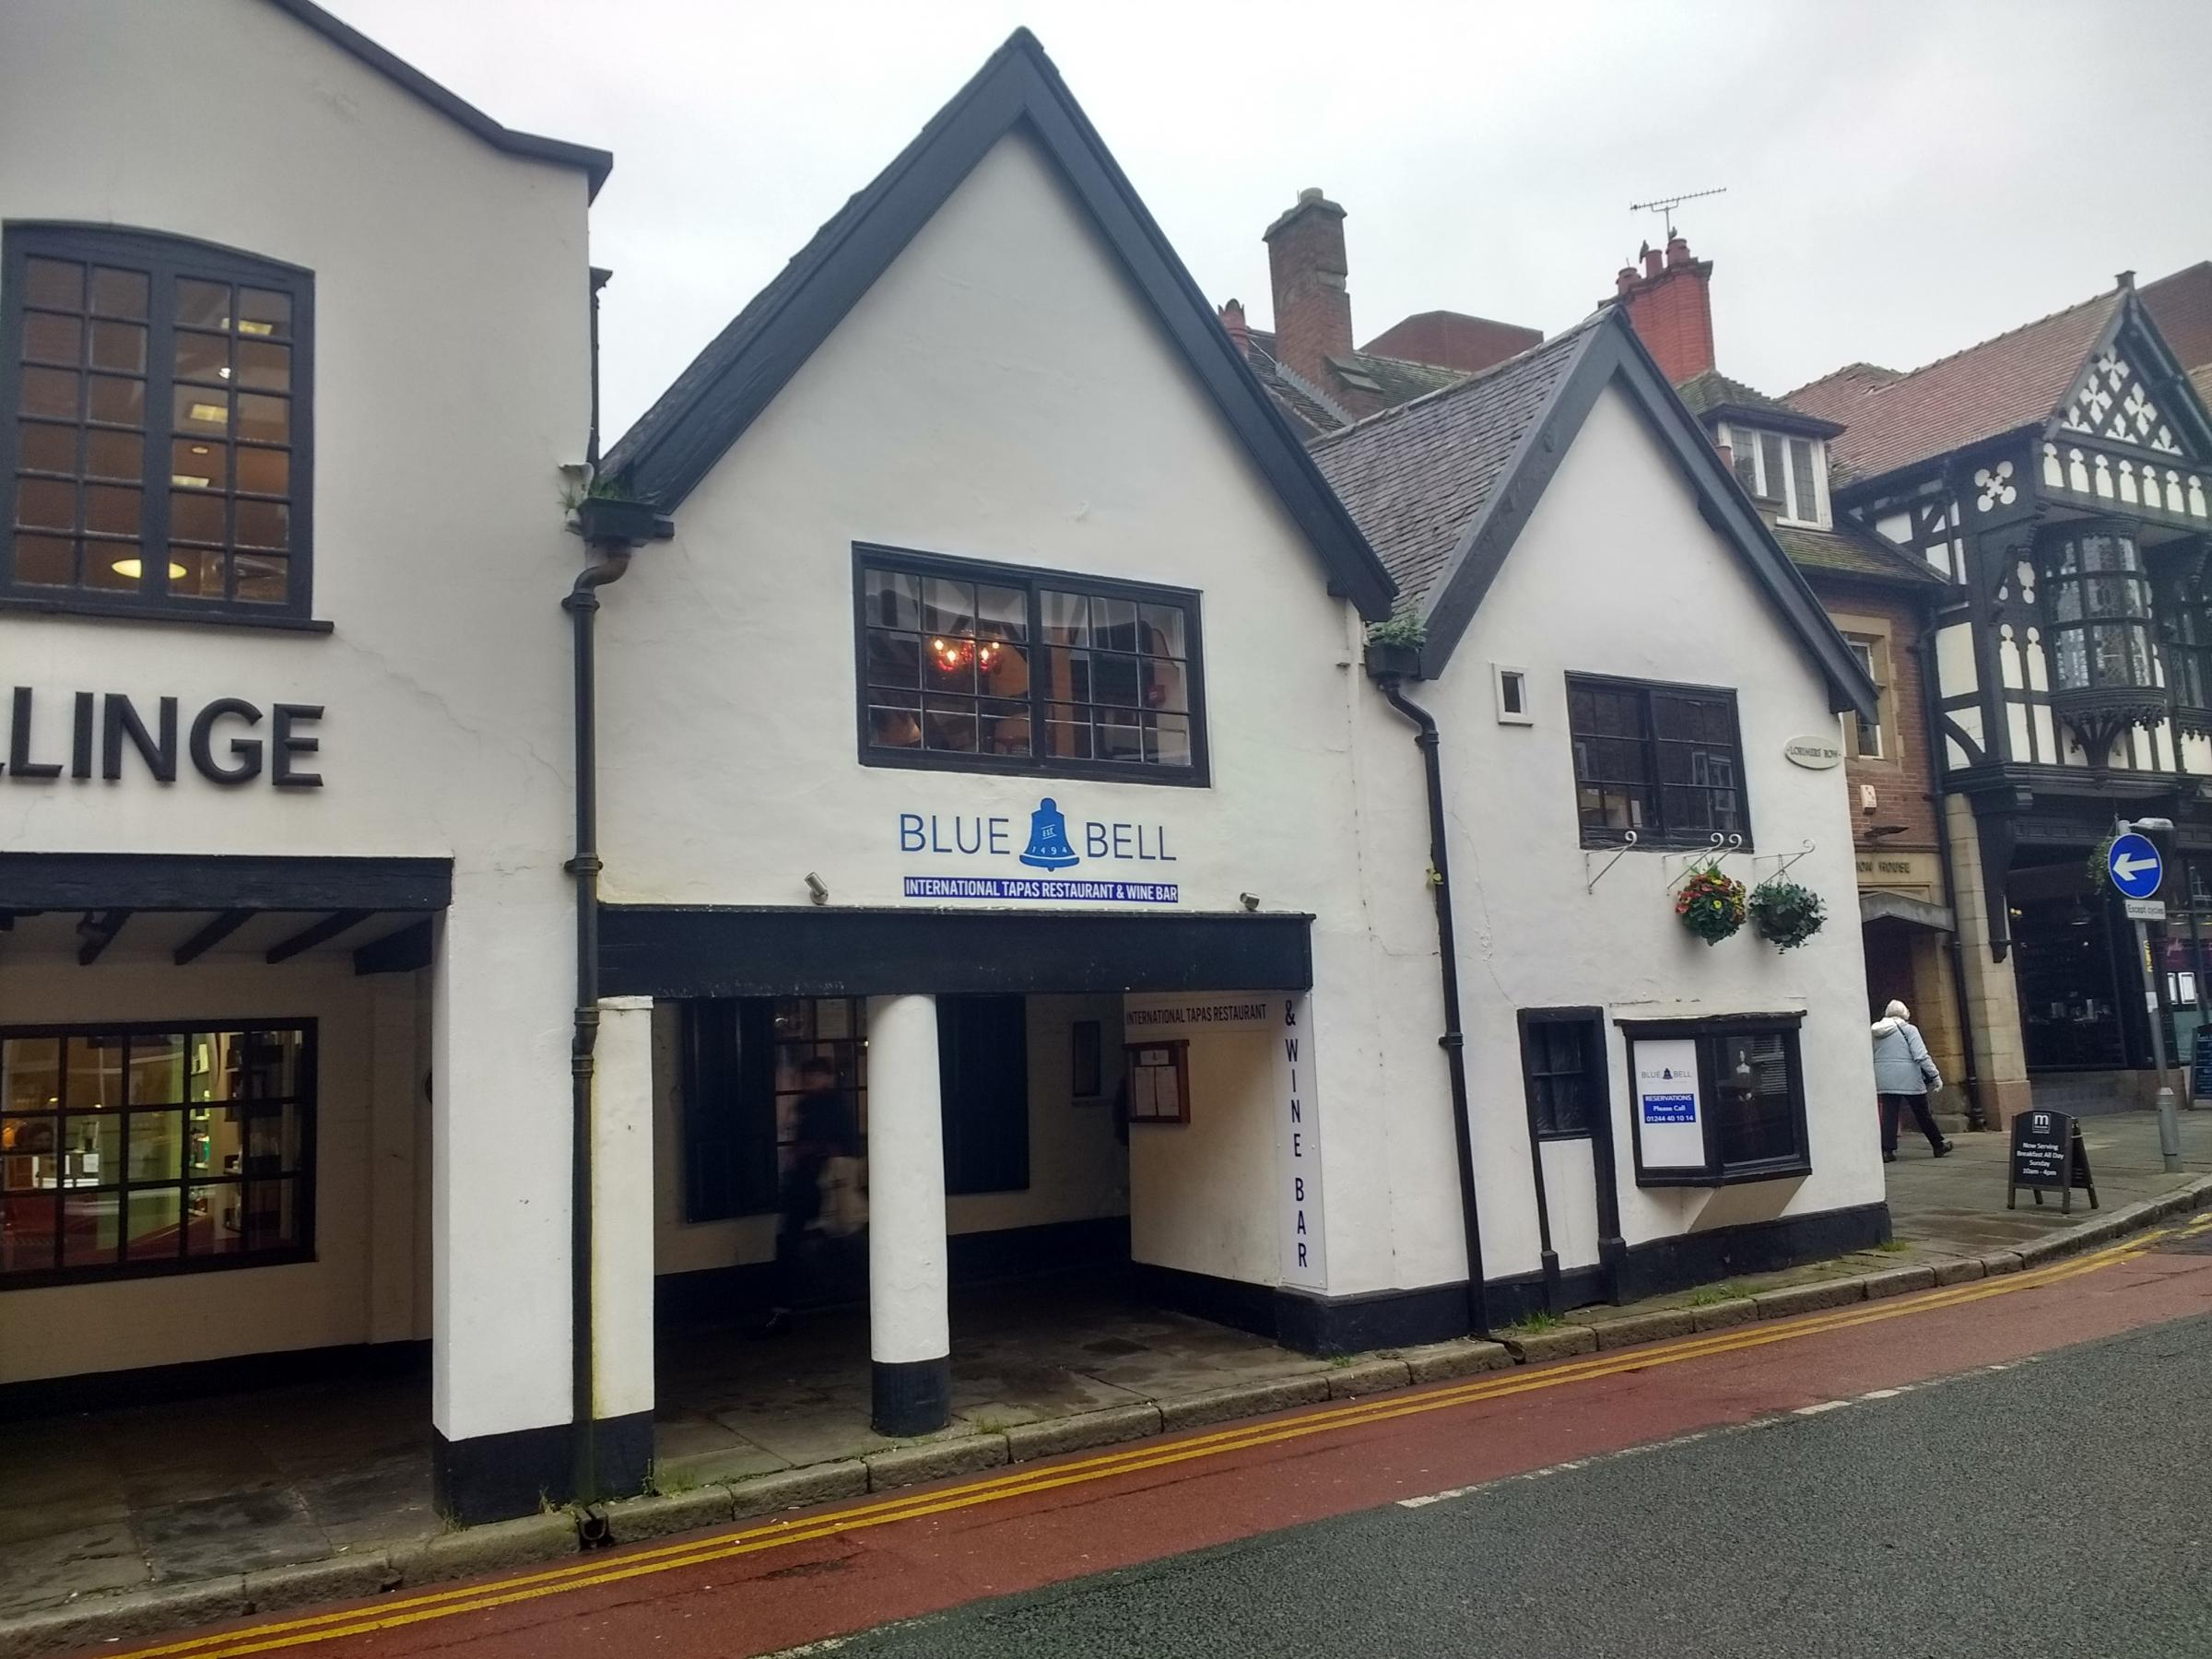 A man has been charged with burglary following a break-in at the Blue Bell pub in Chester.